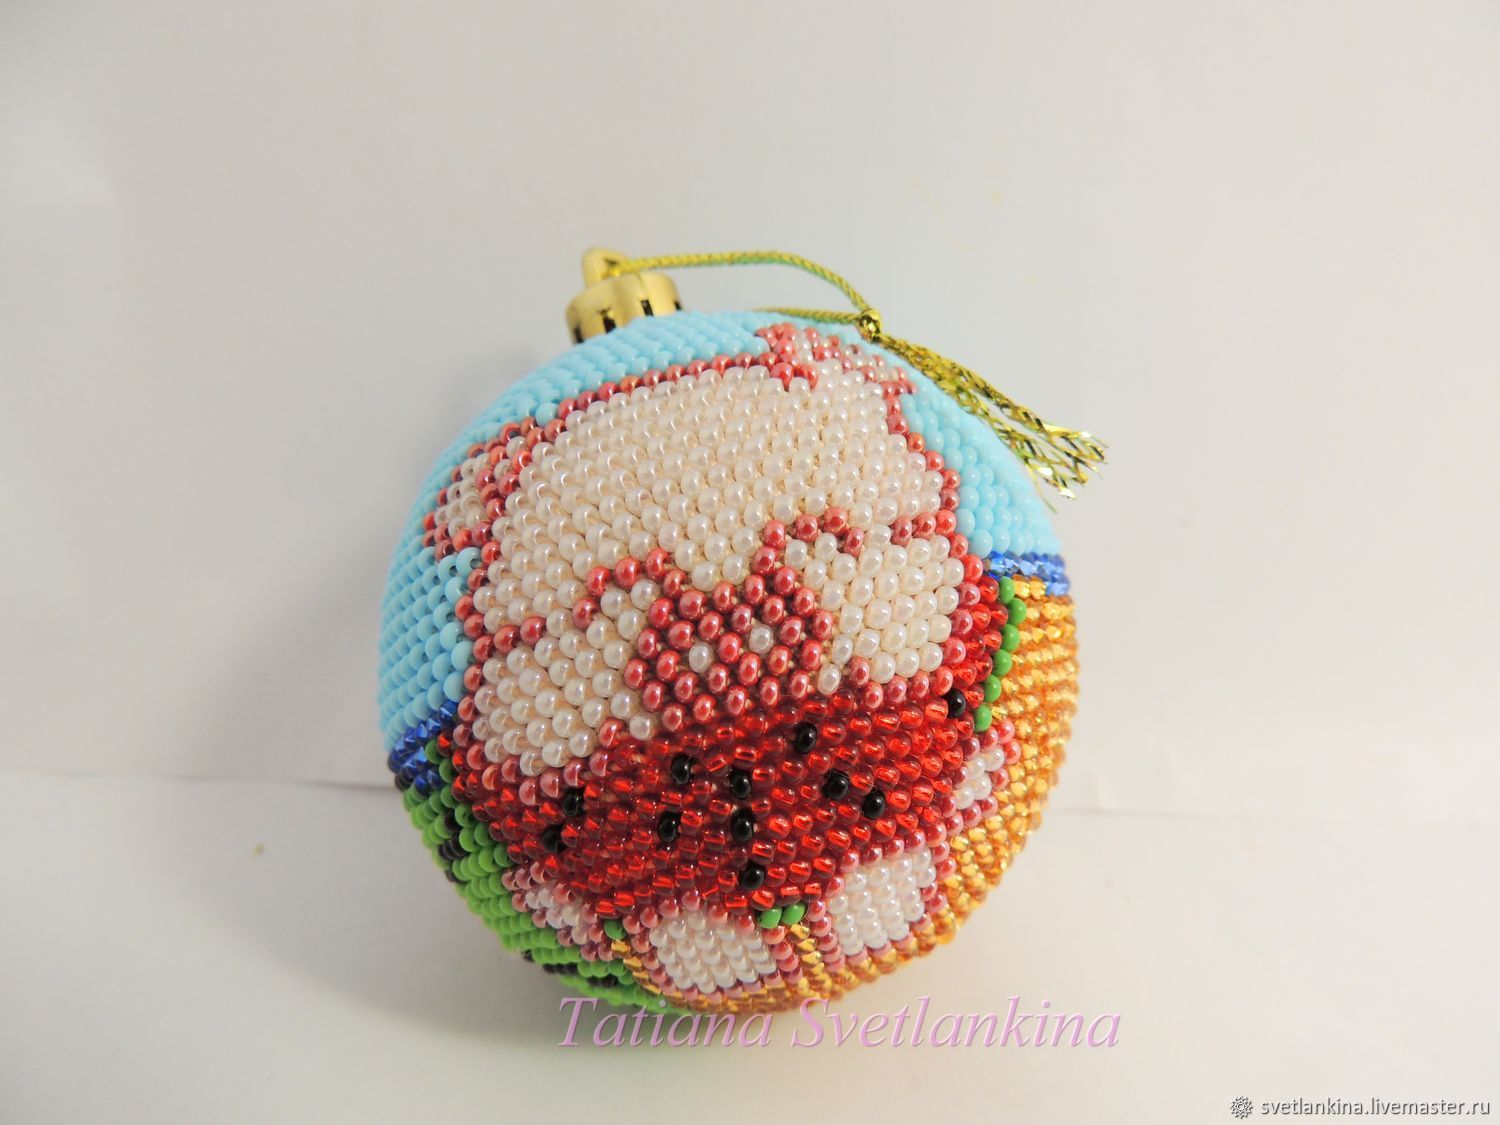 New year's eve ball. Suckling pig with melon, Christmas decorations, Sergiev Posad,  Фото №1